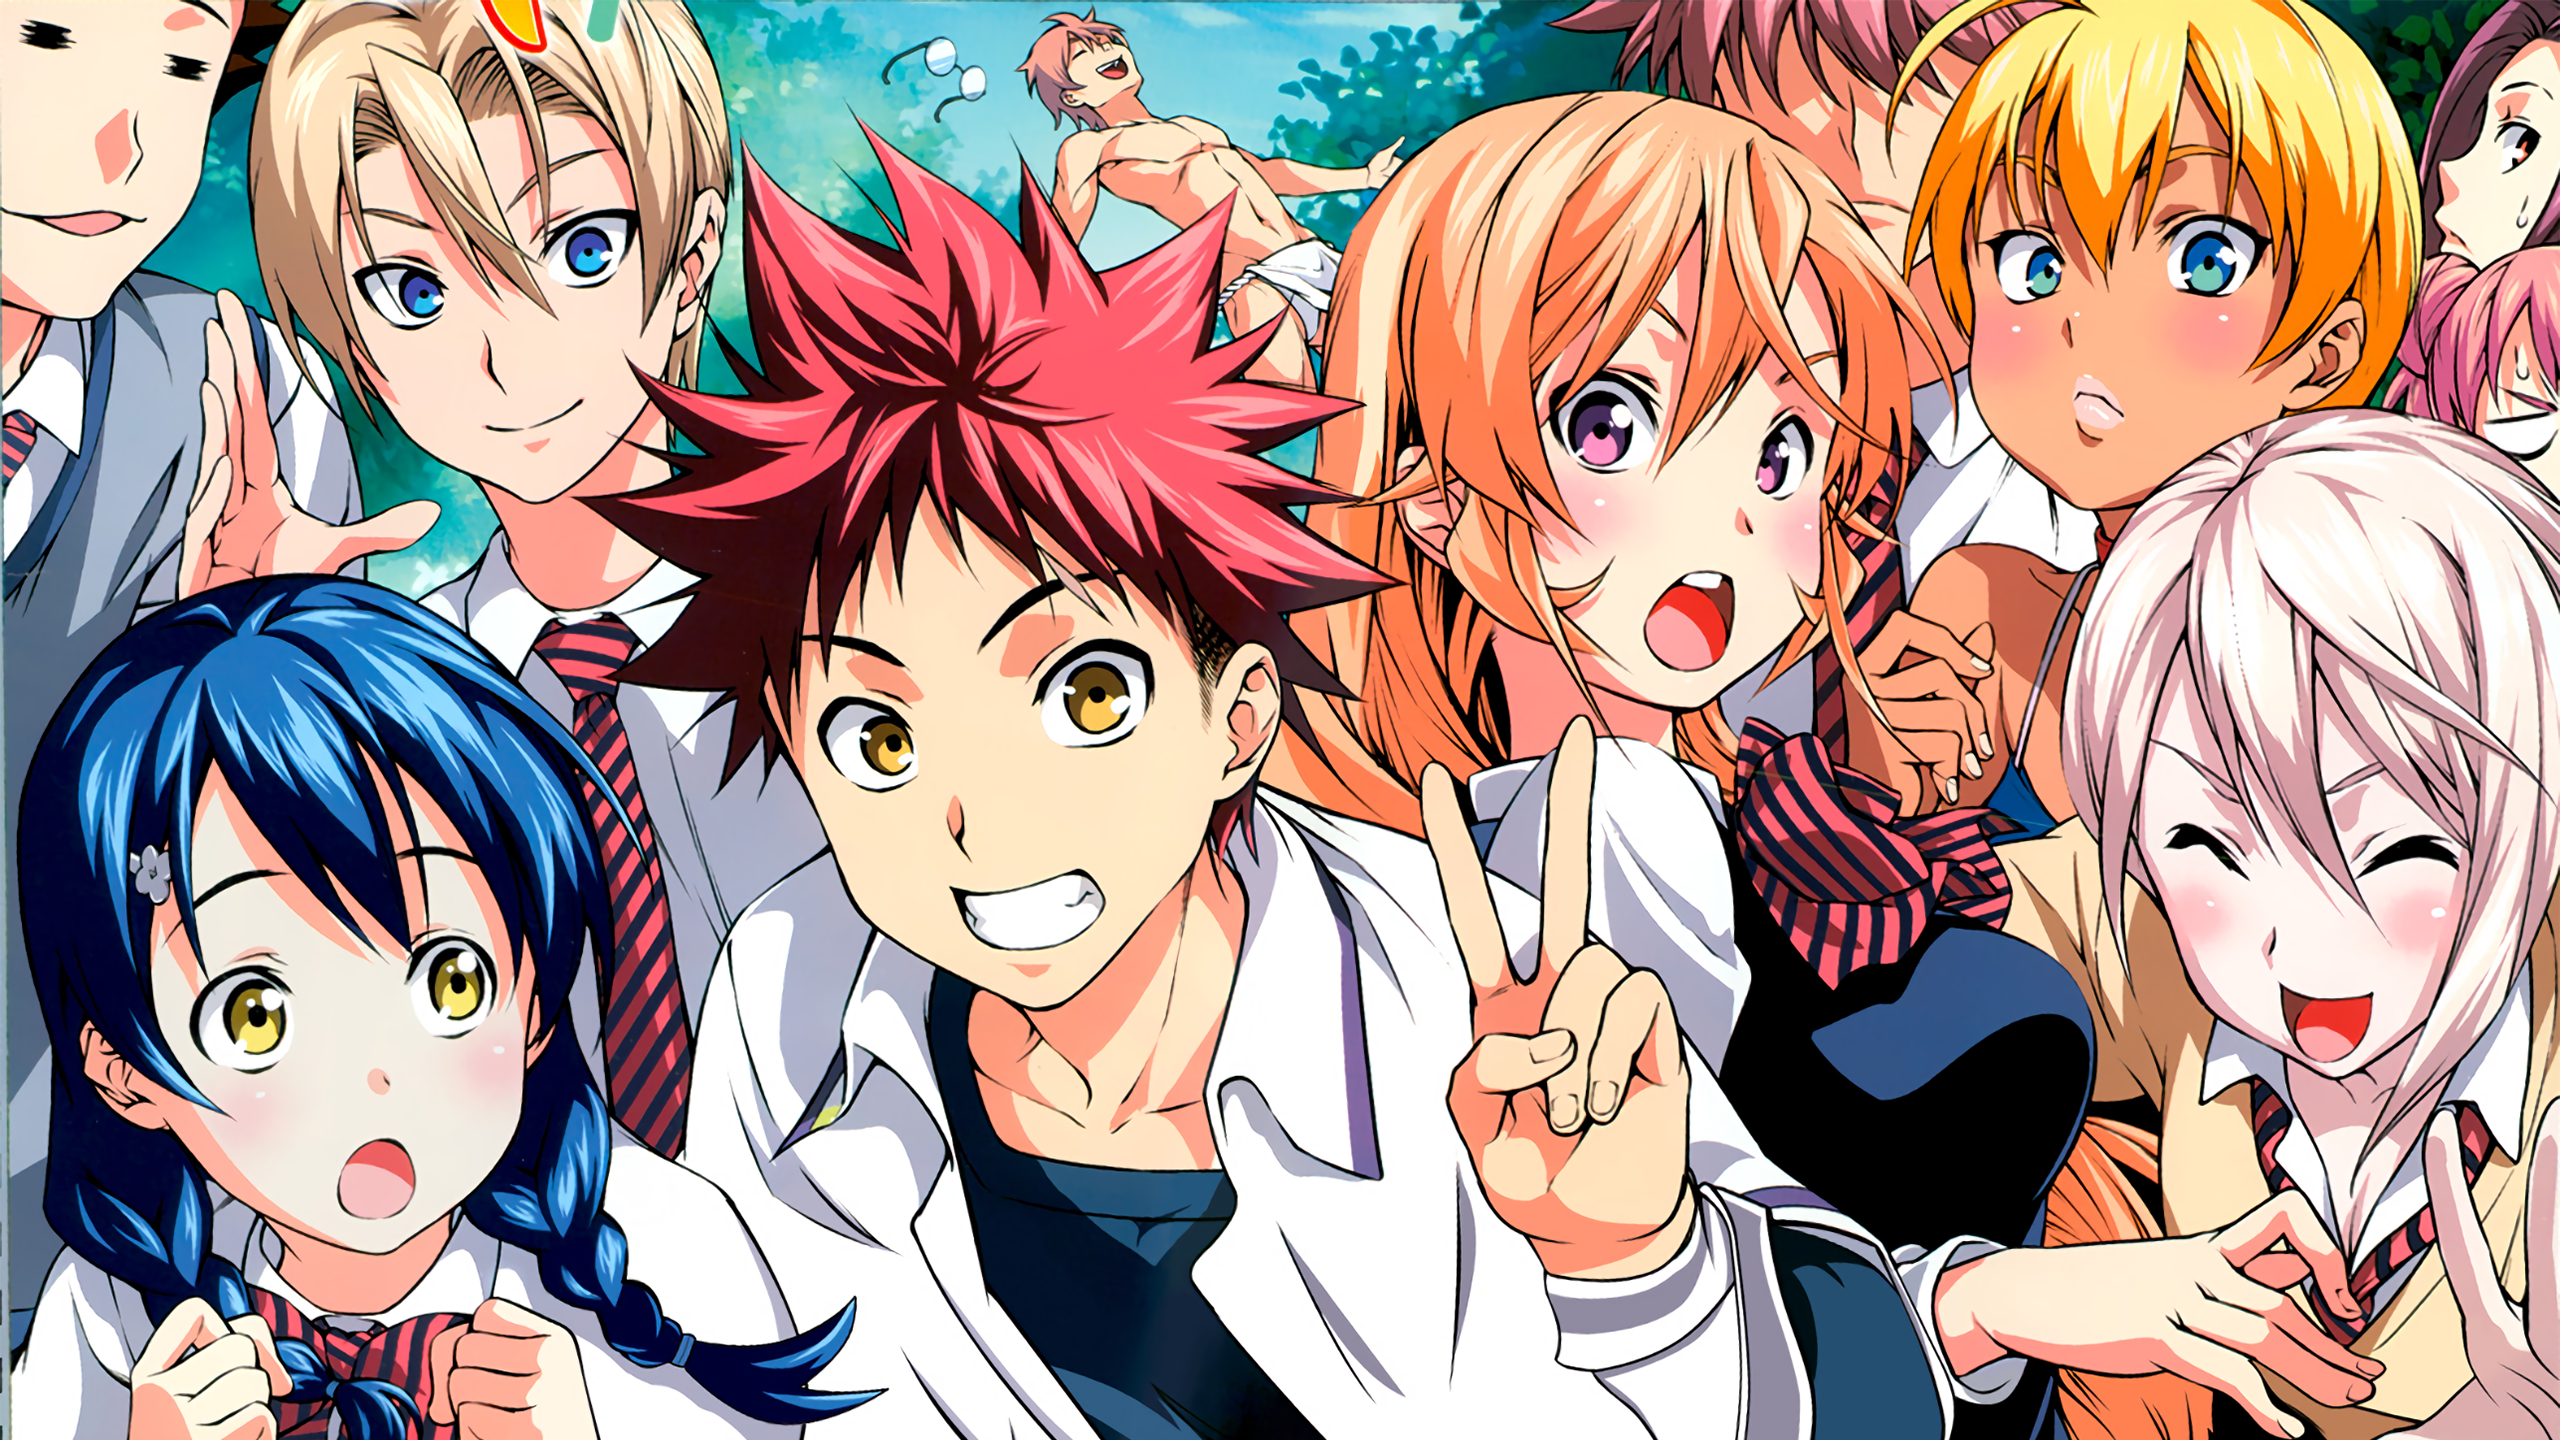 Hd Wallpaper - Shokugeki No Soma Ss4 , HD Wallpaper & Backgrounds